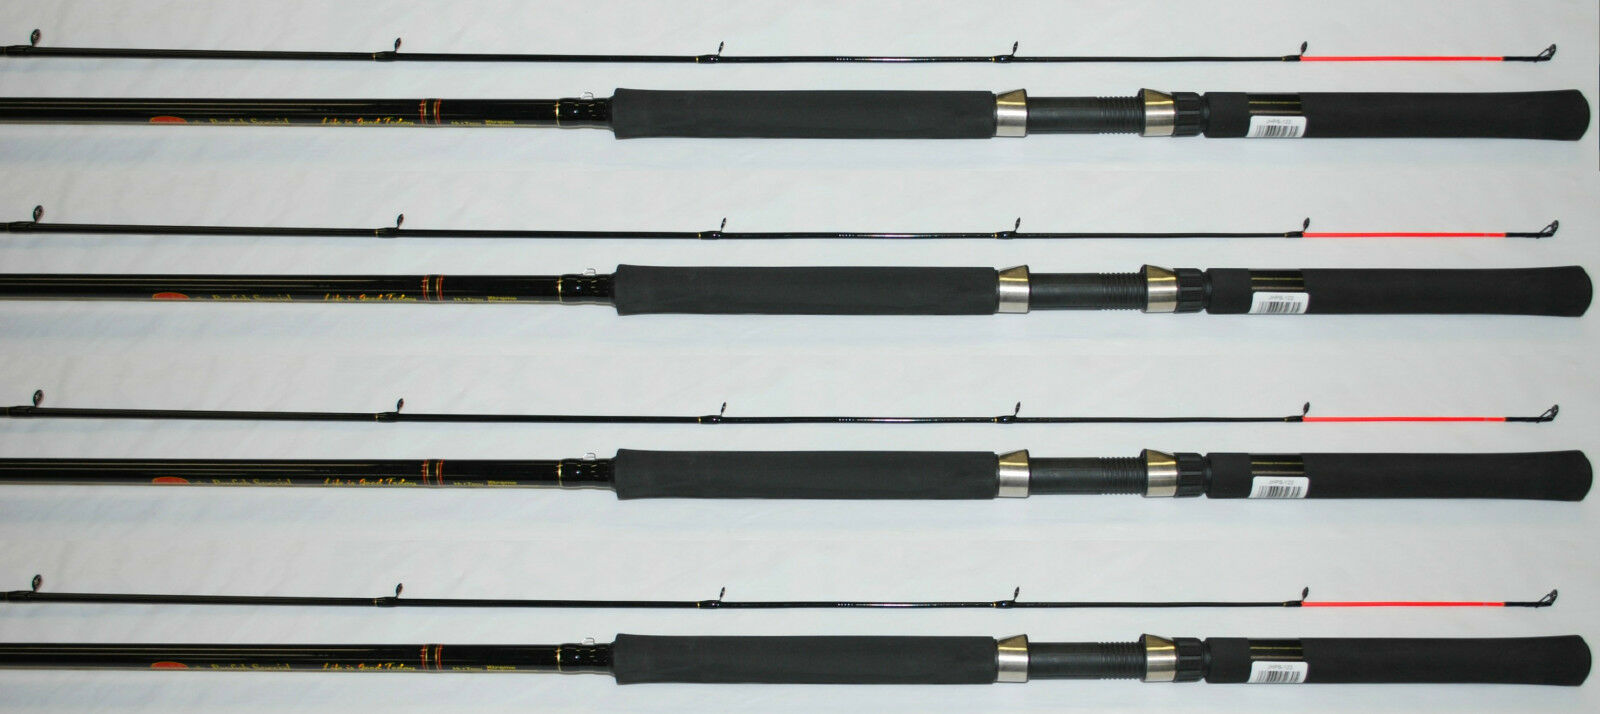 JIMMY HOUSTON PANFISH SPECIAL12' COMPOSITE CRAPPIE POLE ROD JHPS122 (SET OF 4)